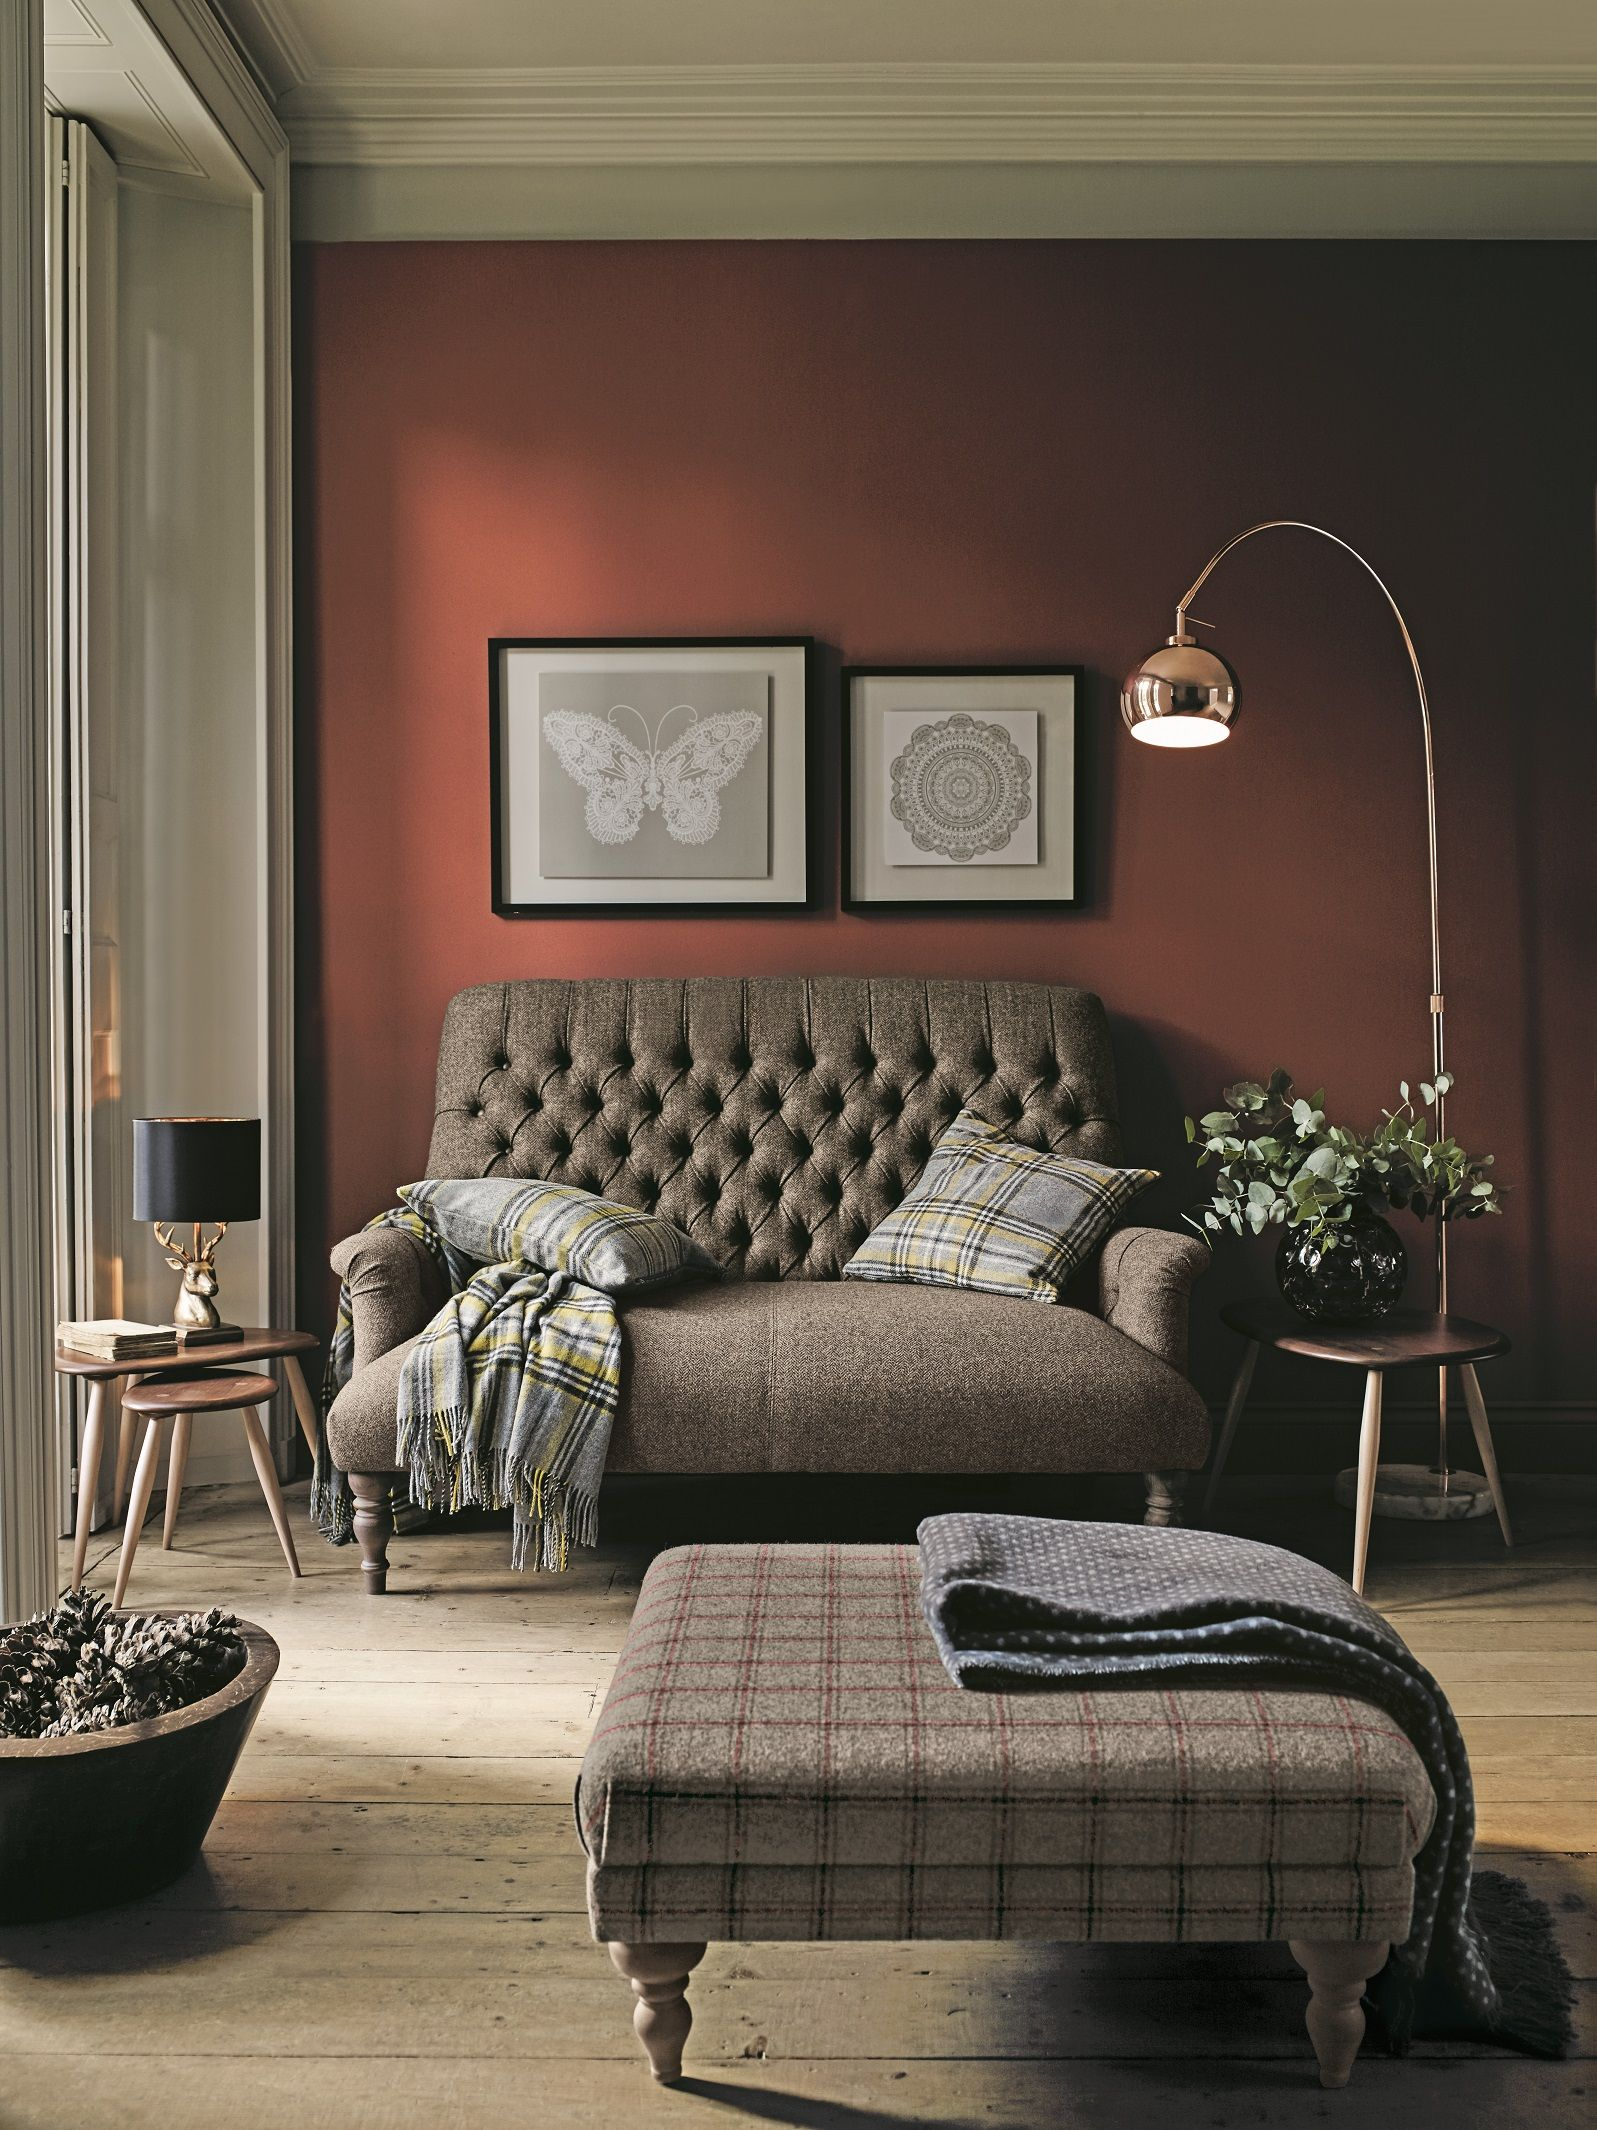 Inspired By British Heritage The Terracotta Colours Give This Living Room An Autumnal Feel Snug Room Living Room Color Living Room Colors #terracotta #living #room #walls